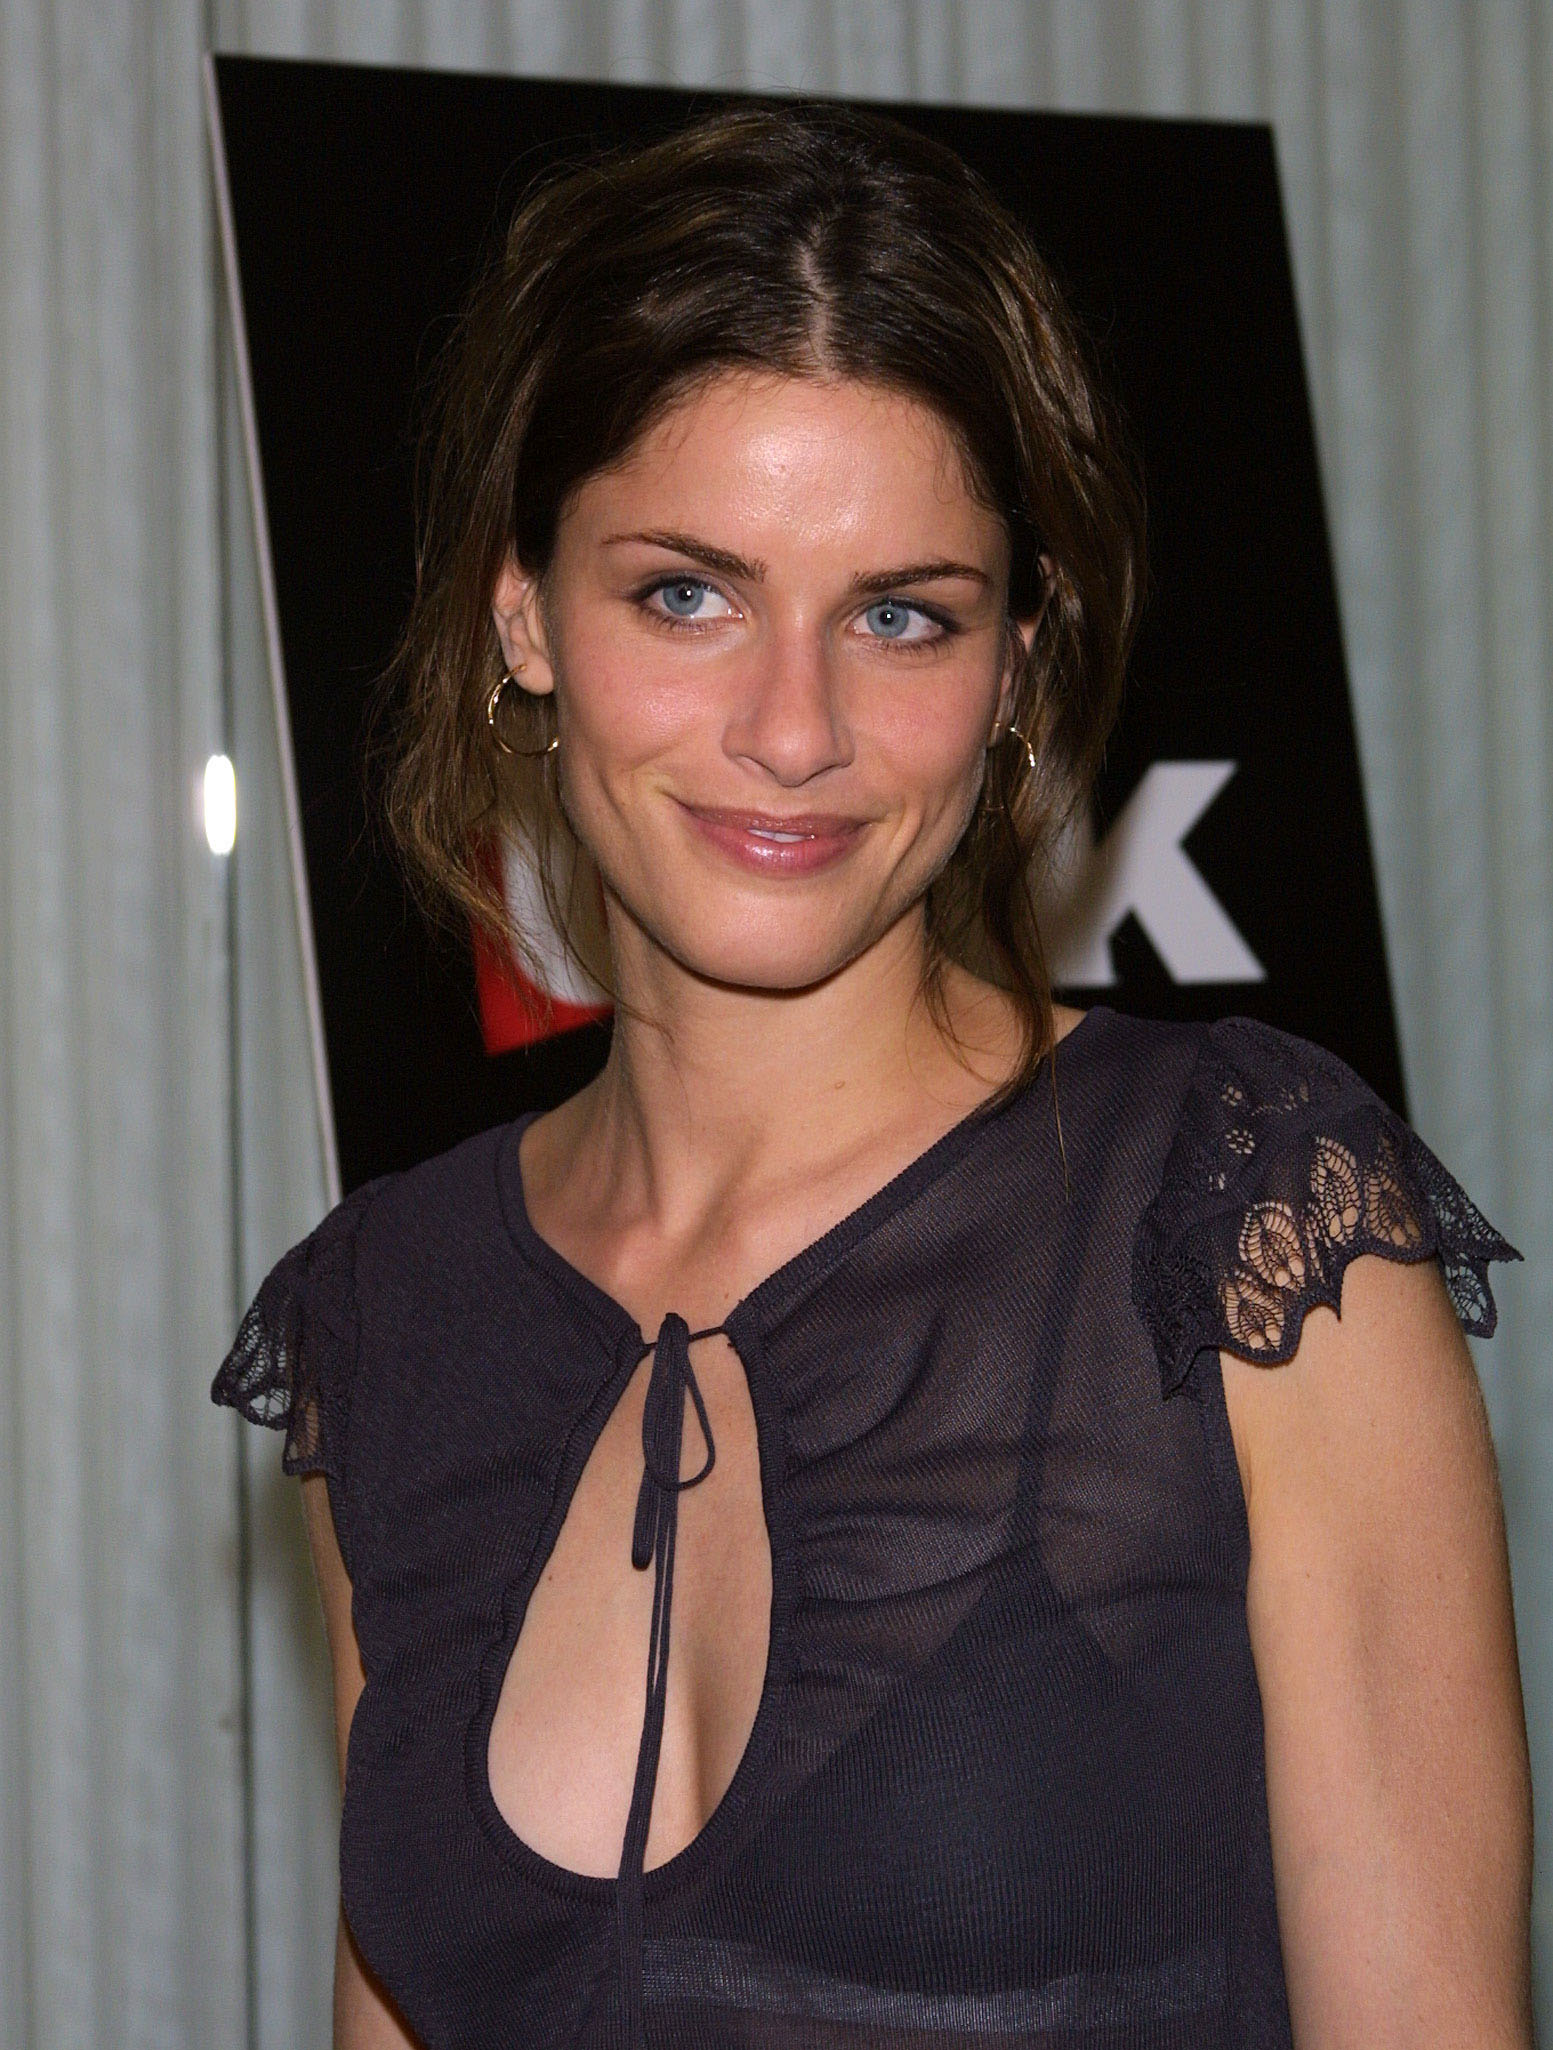 amanda peet wikipediaamanda peet 2016, amanda peet instagram, amanda peet 2017, amanda peet young, amanda peet wiki, amanda peet fansite, amanda peet and ashton kutcher, amanda peet zach braff movie, amanda peet photos, amanda peet 2014, amanda peet wikipedia, amanda peet 2015, amanda peet on craig ferguson, amanda peet interview, amanda peet book, amanda peet ellen, amanda peet david letterman, amanda peet david benioff wedding, amanda peet sarah pulson, amanda peet imdb